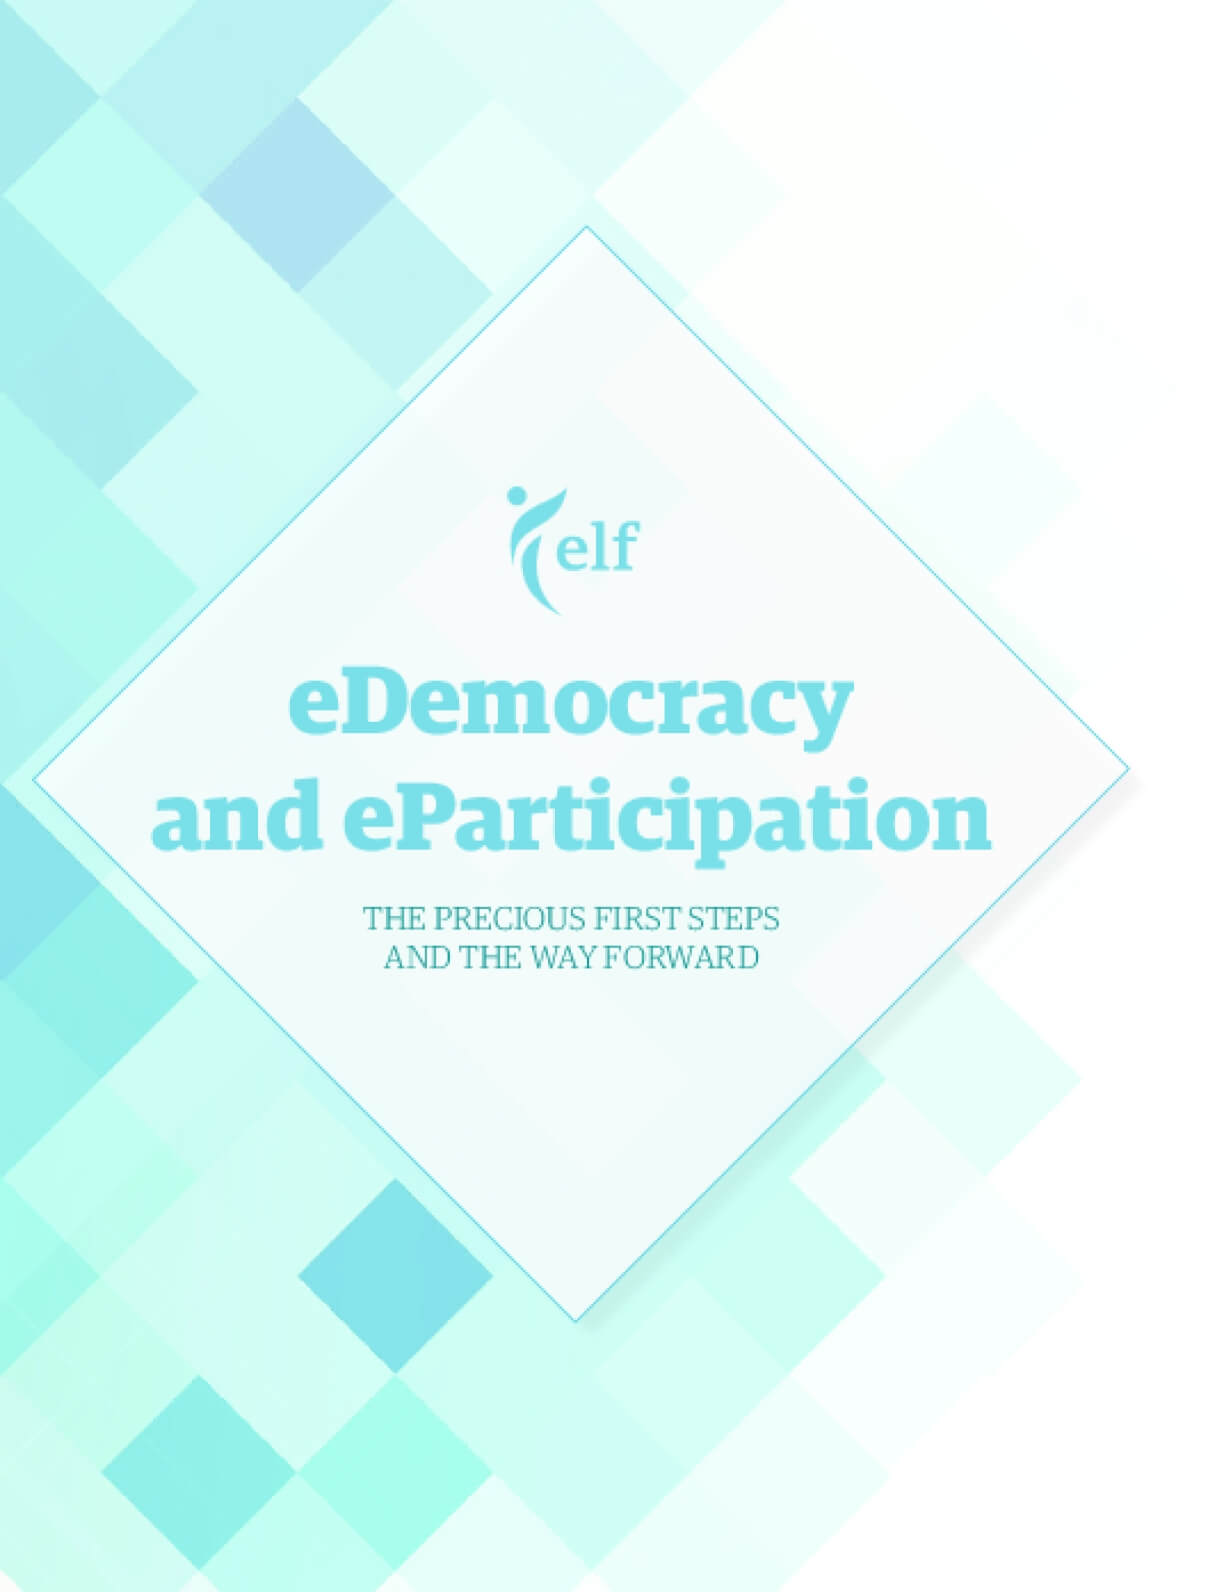 eDemocracy and eParticipation: The Precious First Steps and the Way Forward